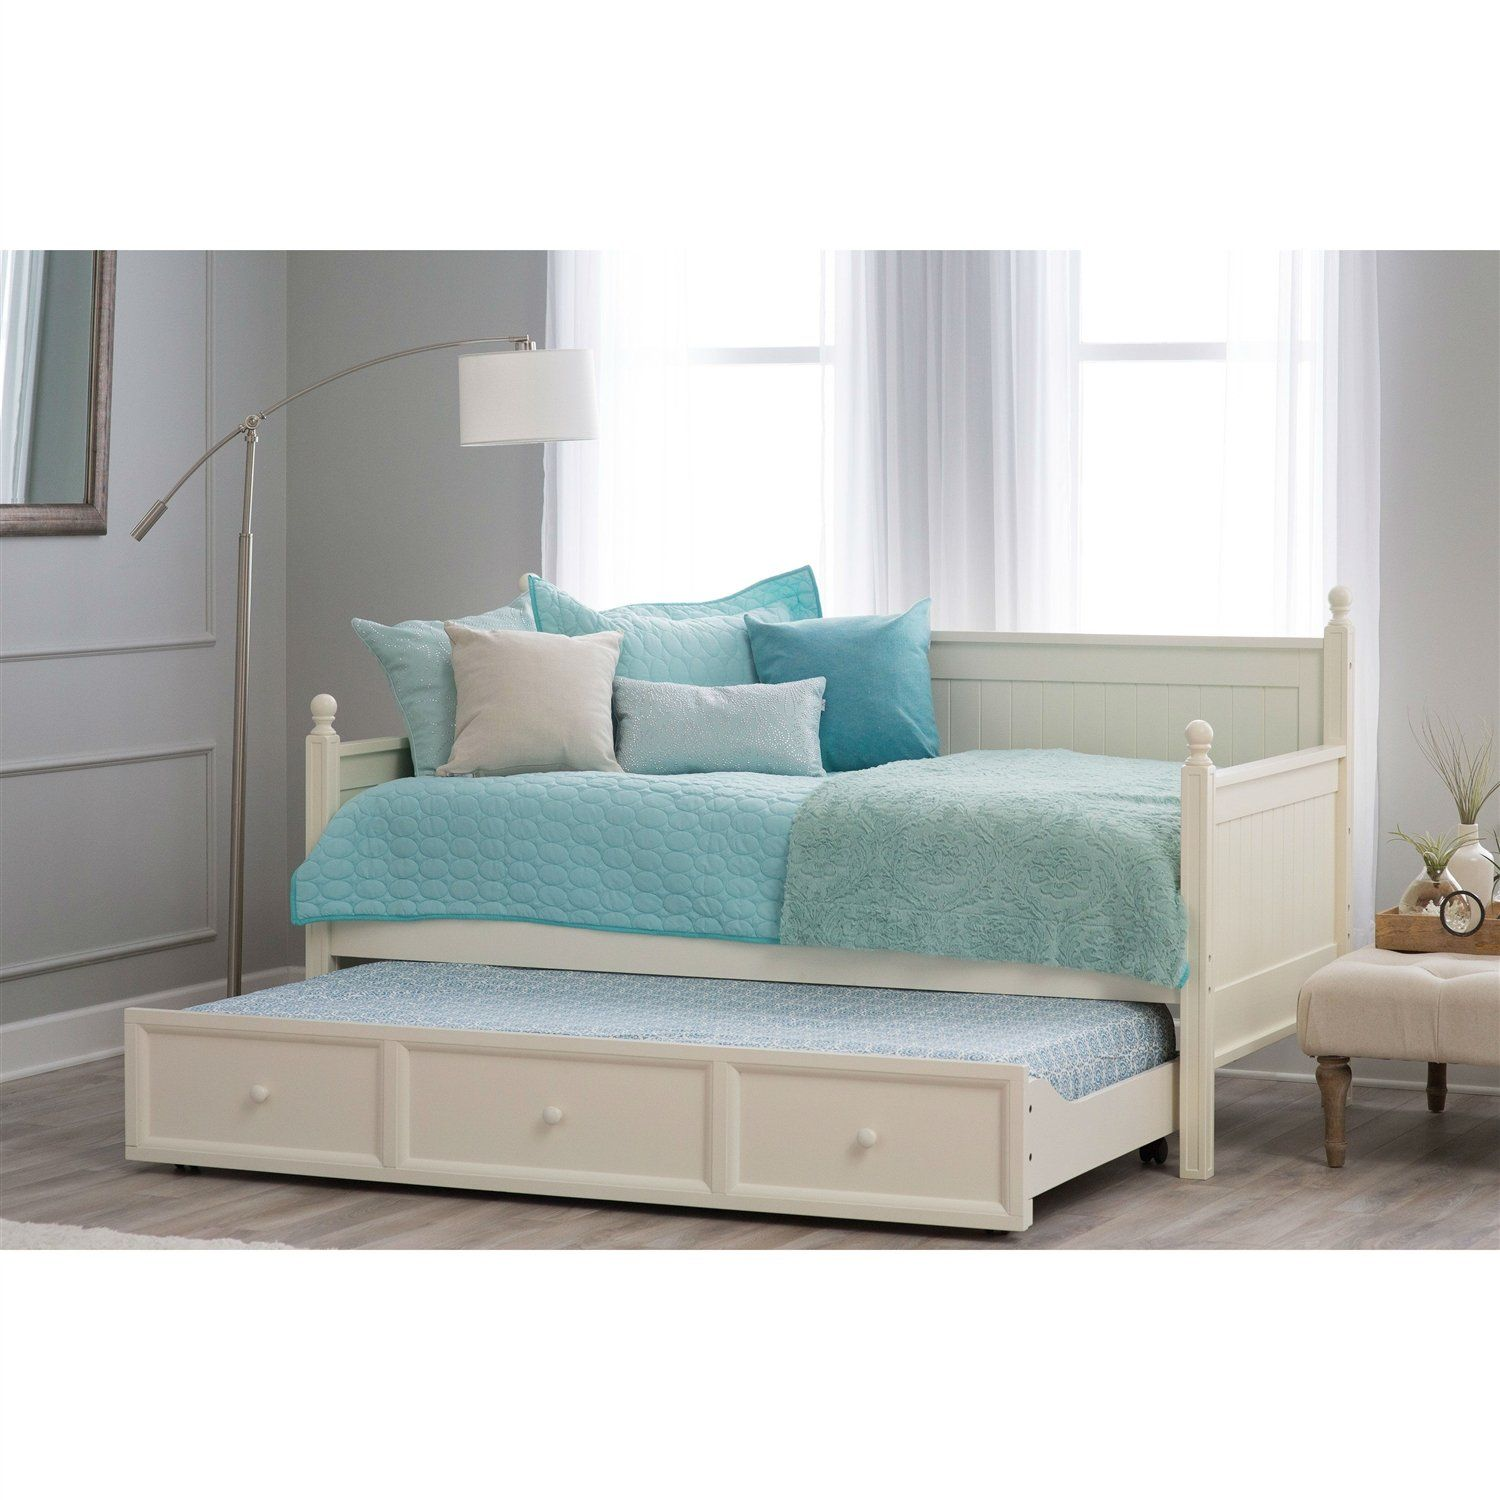 Twin Size White Wood Daybed With Pull Out Trundle Bed In 2021 White Wood Daybed Wood Daybed Daybed With Trundle White wood daybed with trundle